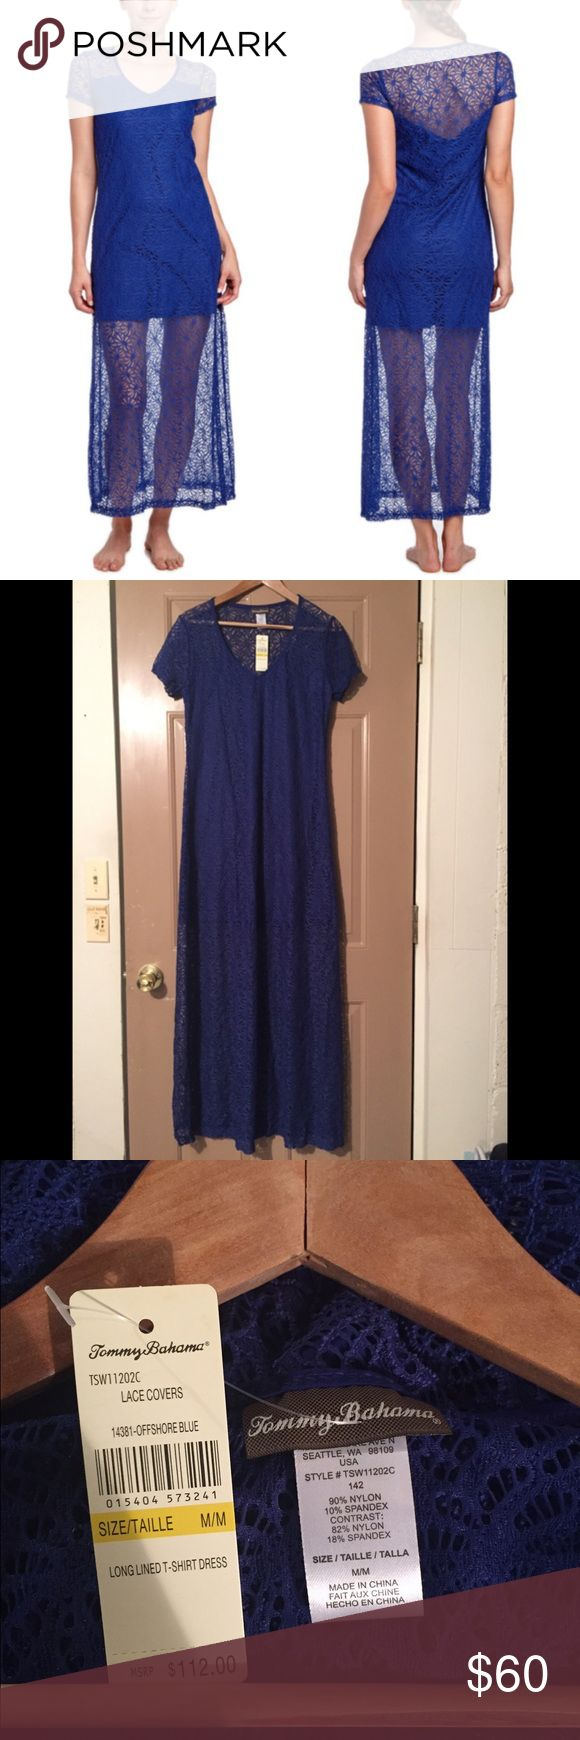 NWT Tommy Bahama Blue Lace Maxi Dress NWT Tommy Bahama Blue Lace Maxi Dress SIZE:Medium COLOR: Blue RETAIL: $112   Fun, flirty days await you in this lovely lace dress. Soft and lightweight floral lace brings femininity to the maxi T-shirt style. Fashioned with a short opaque lining, it's the perfect option for date night, dancing and poolside drinks.   Shell: 90% nylon, 10% spandex; lining: 80% nylon, 20% spandex For best results, hand wash Style # TSW11202C Tommy Bahama Dresses Maxi